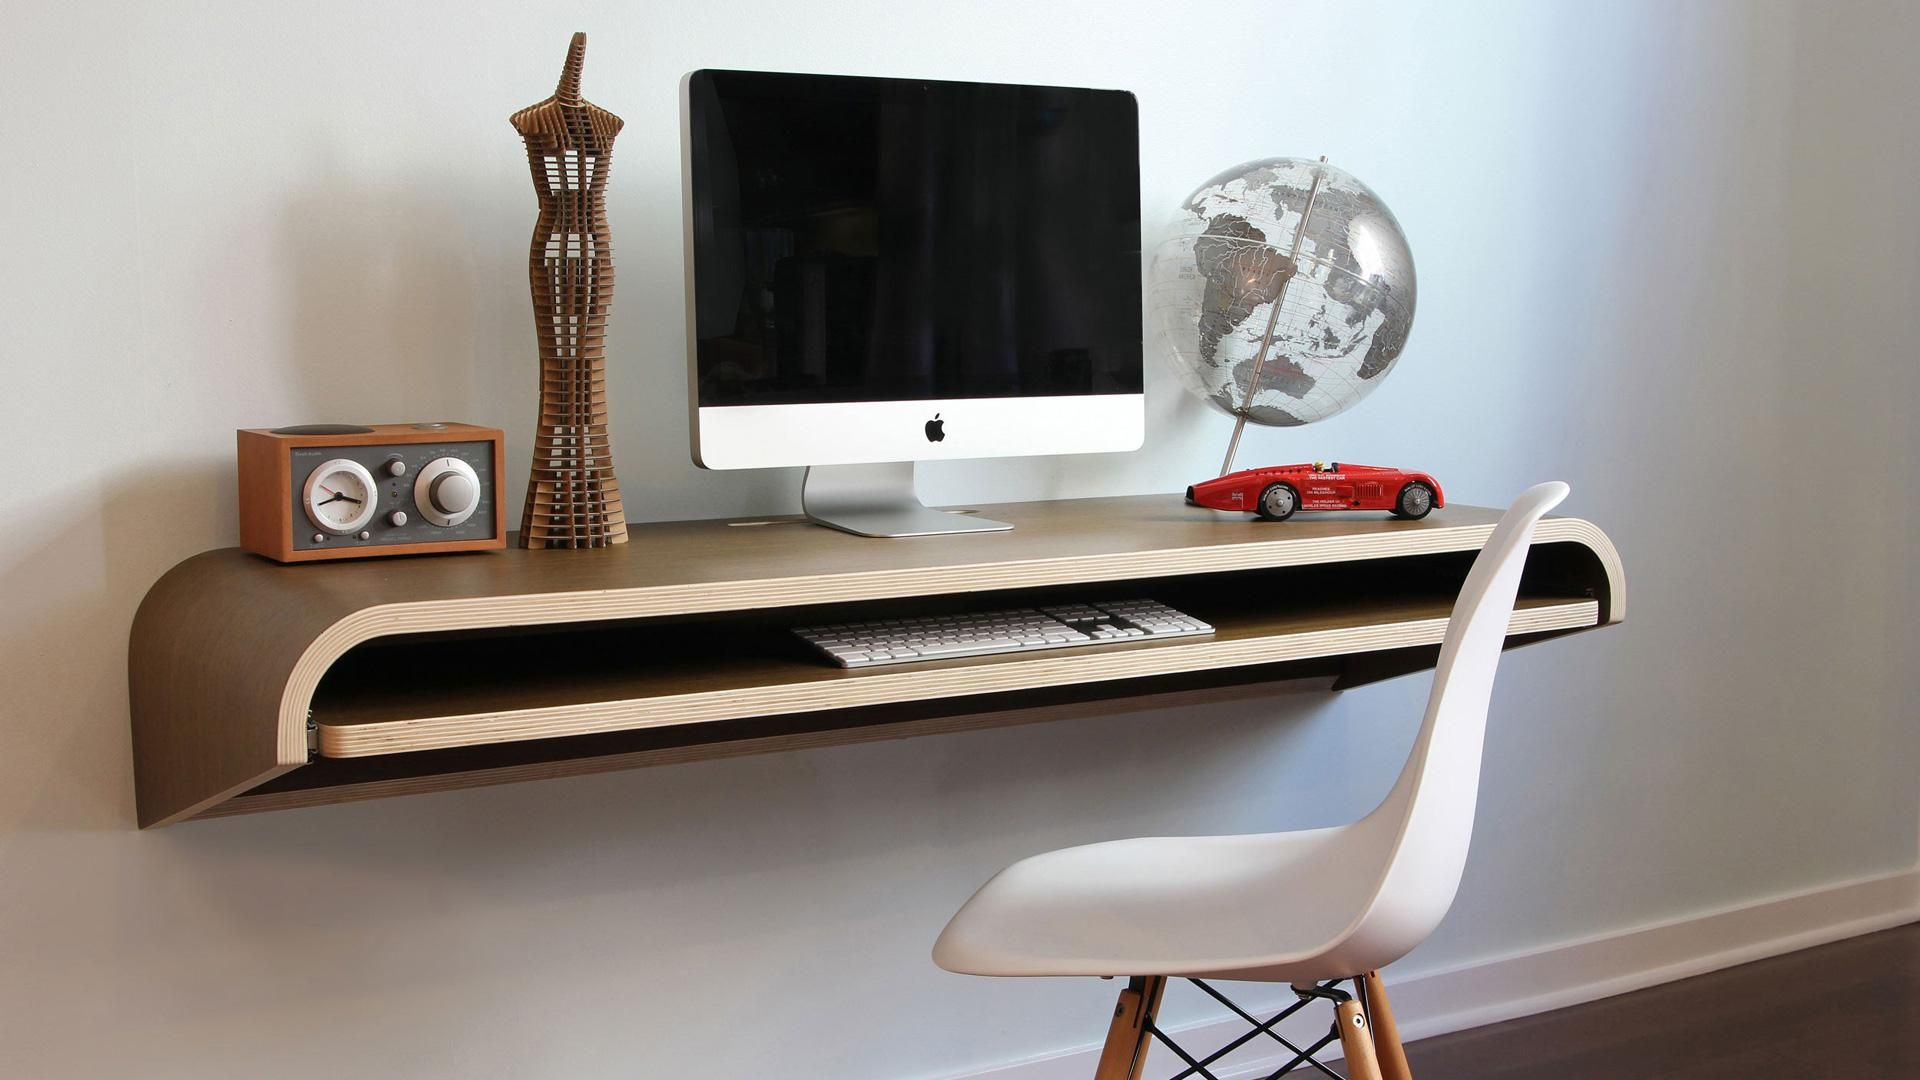 9 Wall Mounted Desks That Are Perfect For Small Spaces Home Office Furniture Wall Desk Floating Wall Desk